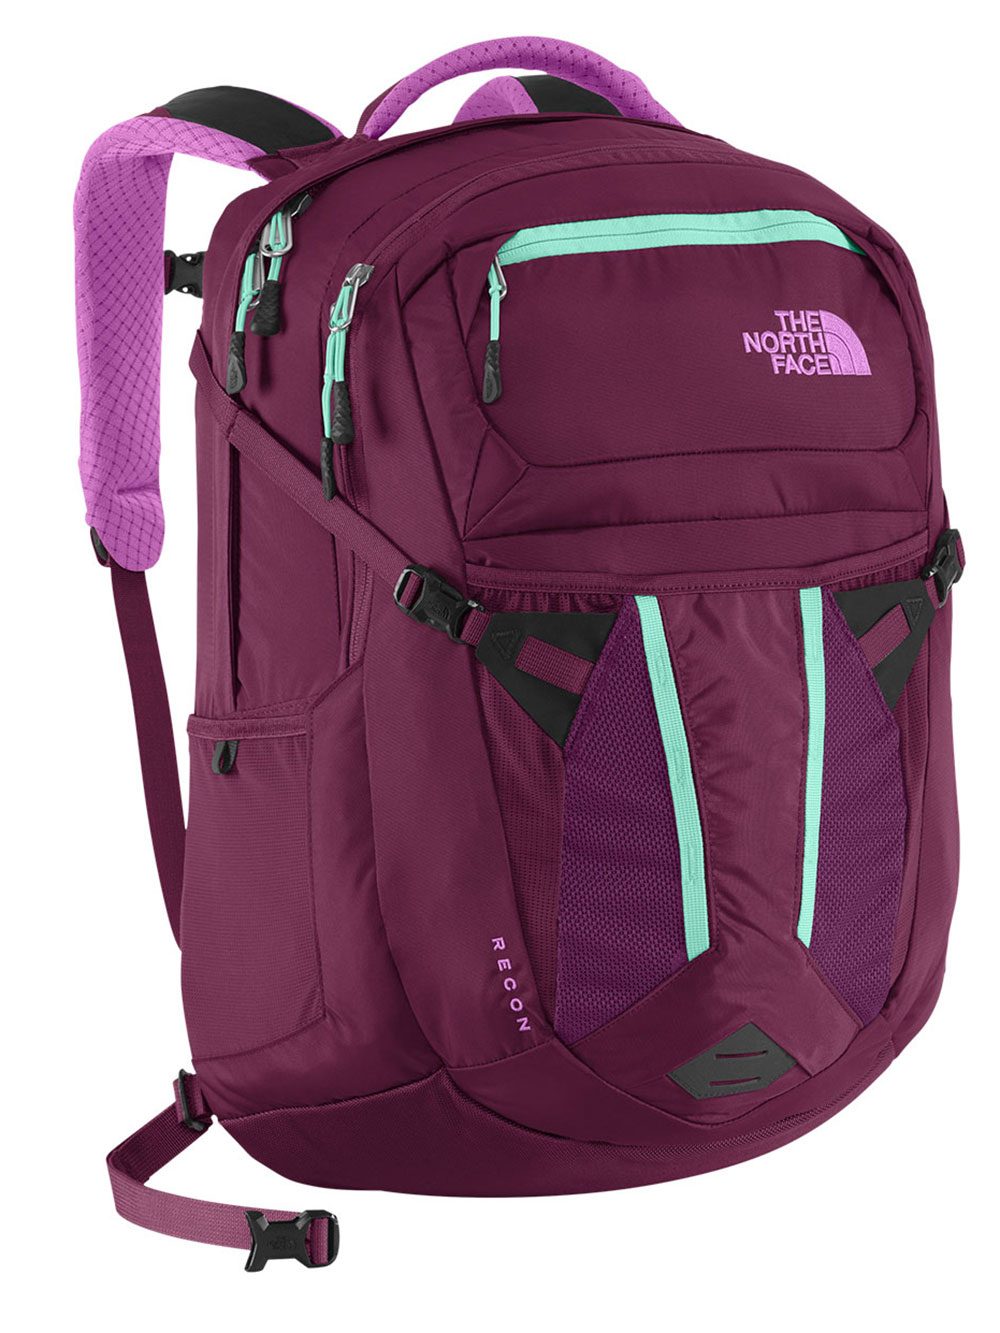 The North Face Women's Recon Backpack - purple/bonnie blue, one size